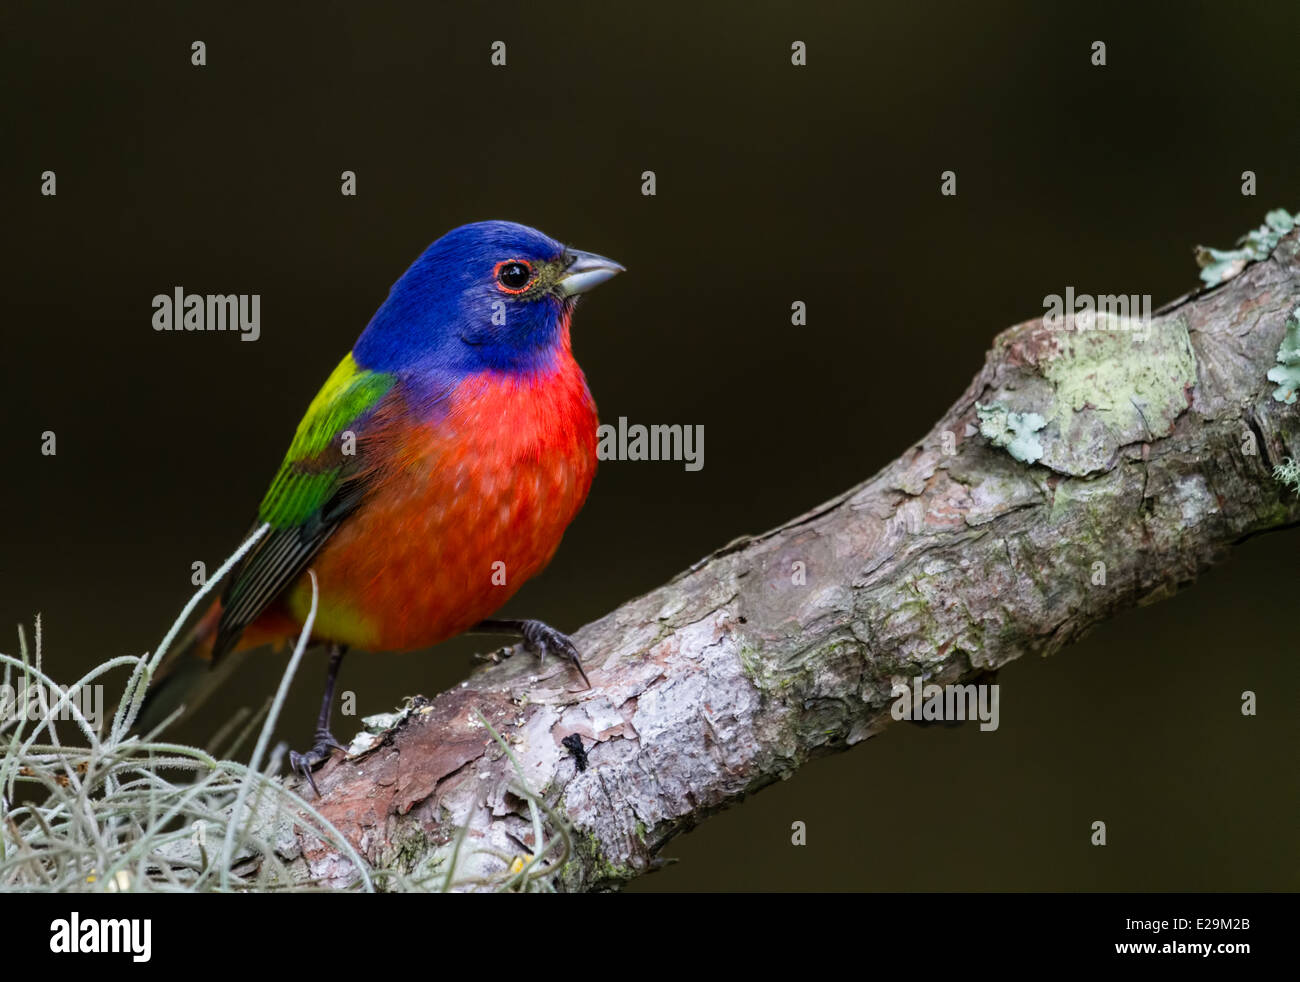 Male Painted Bunting (Passerina ciris) perched on a branch. - Stock Image